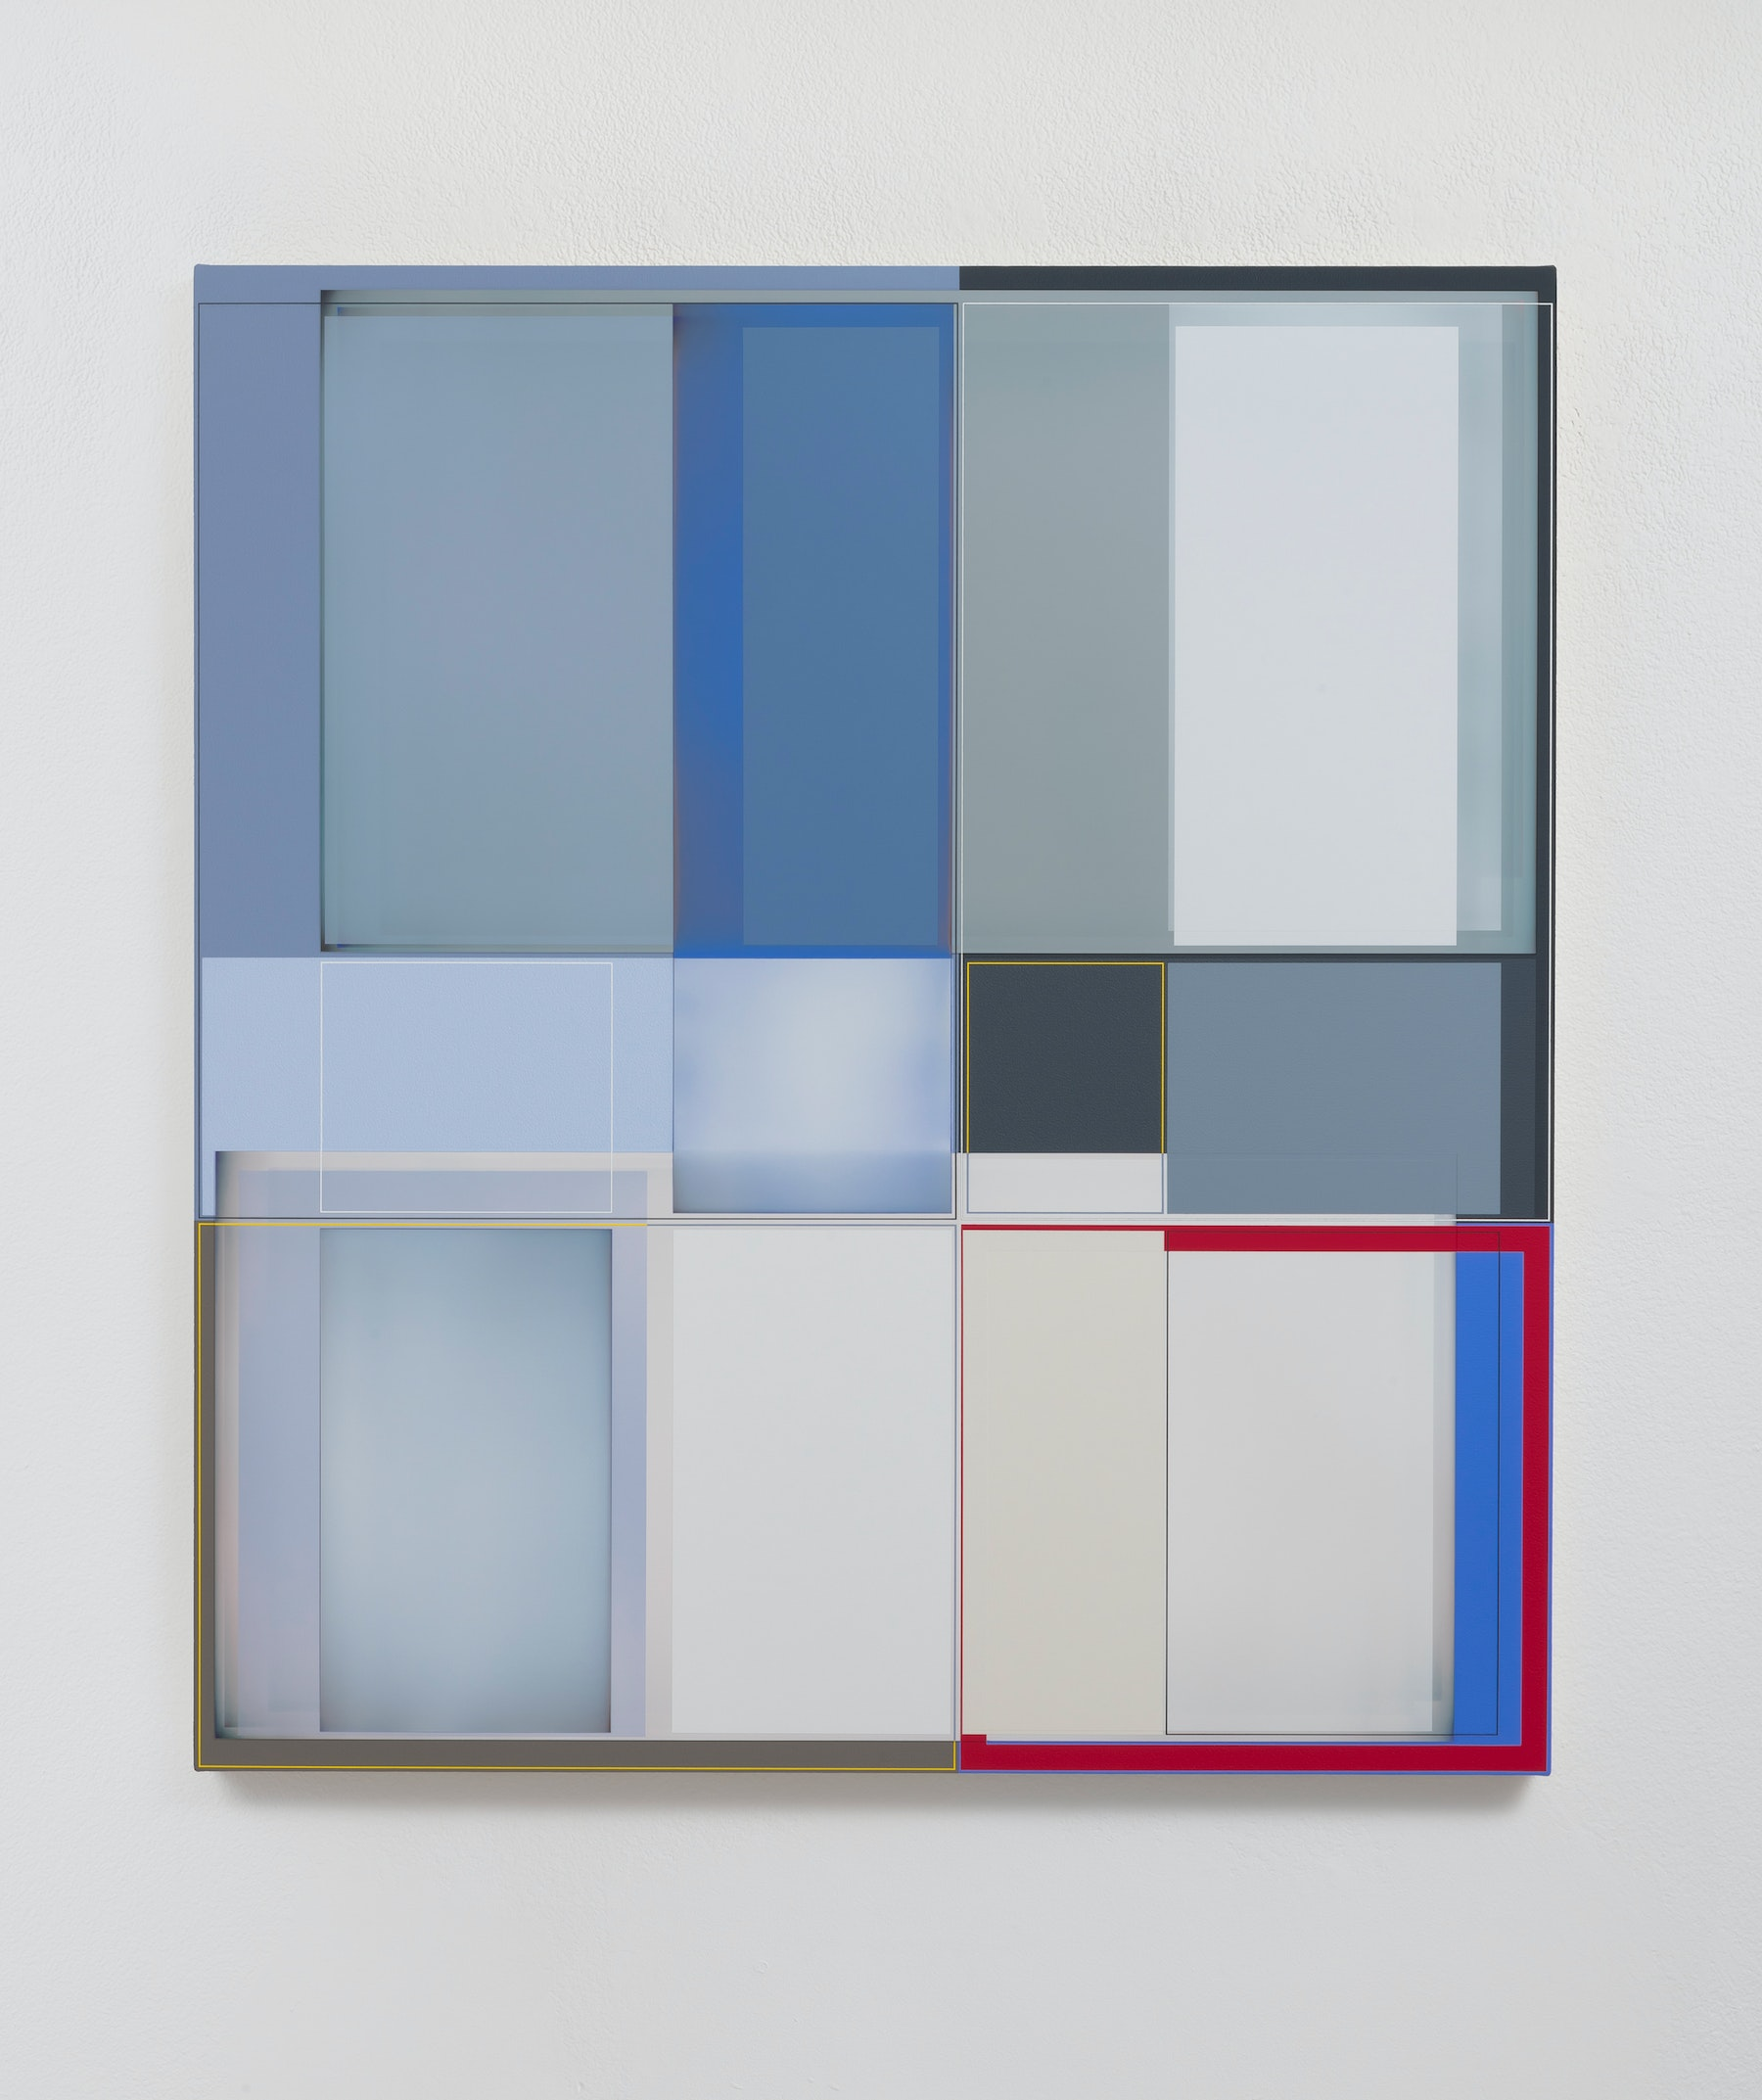 """Patrick Wilson """"Disrupted Grid (Health),"""" 2020 Acrylic on canvas 41"""" x 37"""" [HxW] (104.14 x 93.98 cm) Inventory #WIL576 Courtesy of the artist and Vielmetter Los Angeles Photo credit: Robert Wedemeyer"""